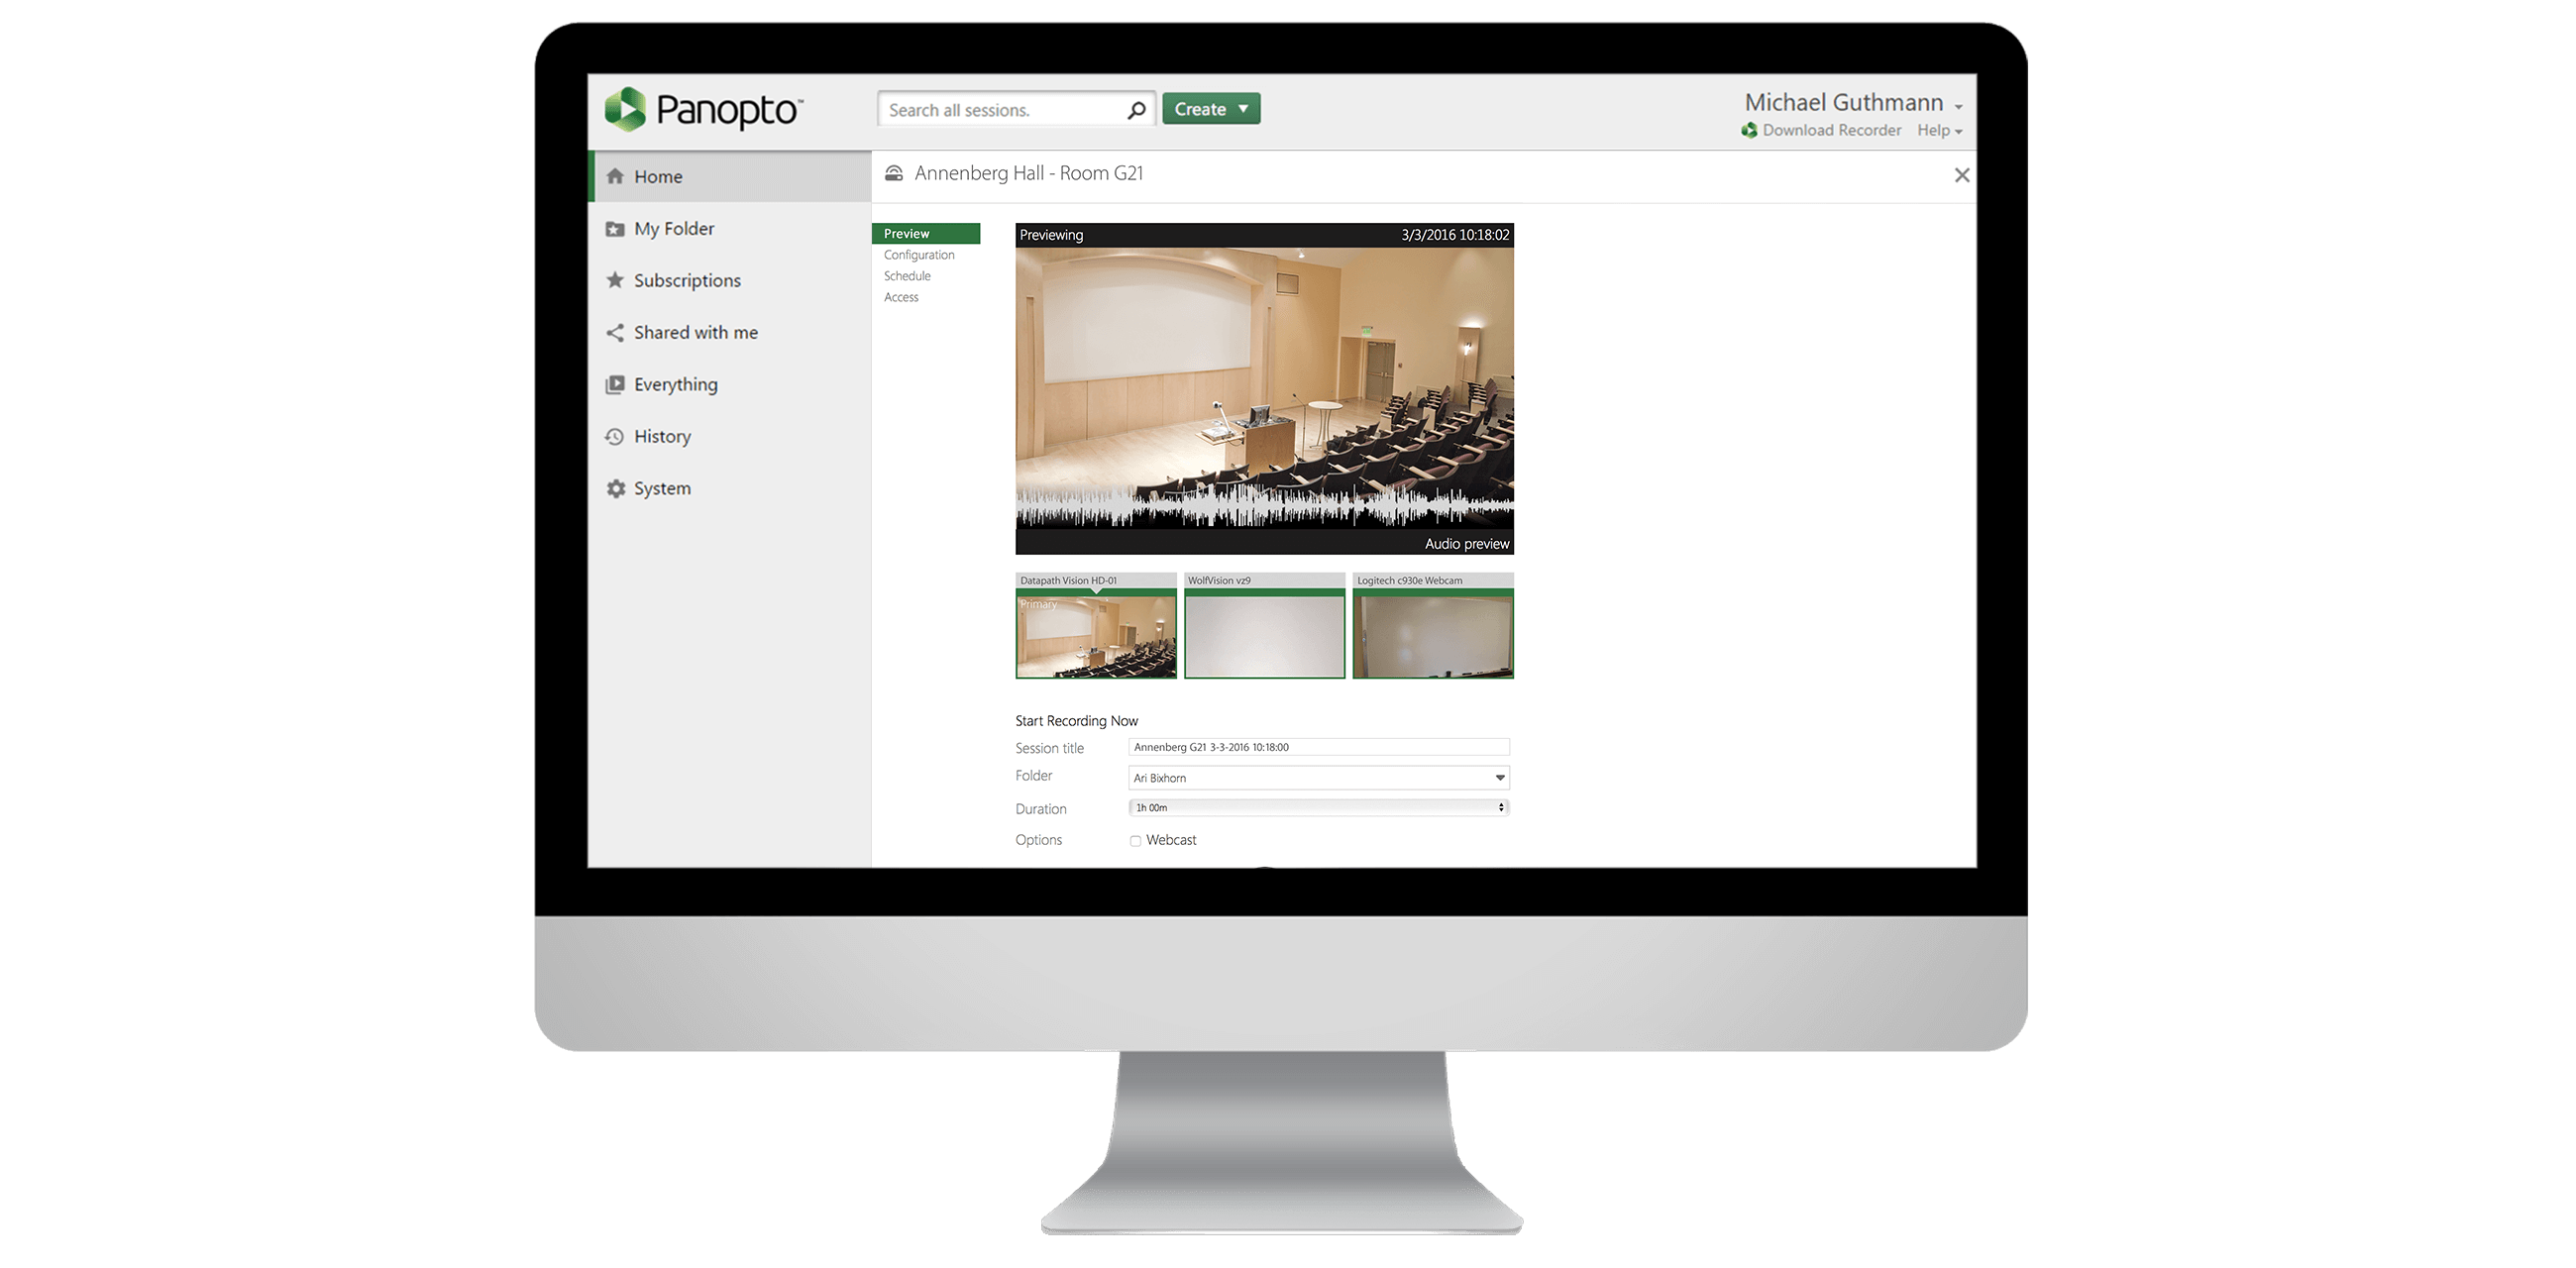 Panopto's automatic video recording makes meeting recording and lecture capture easy